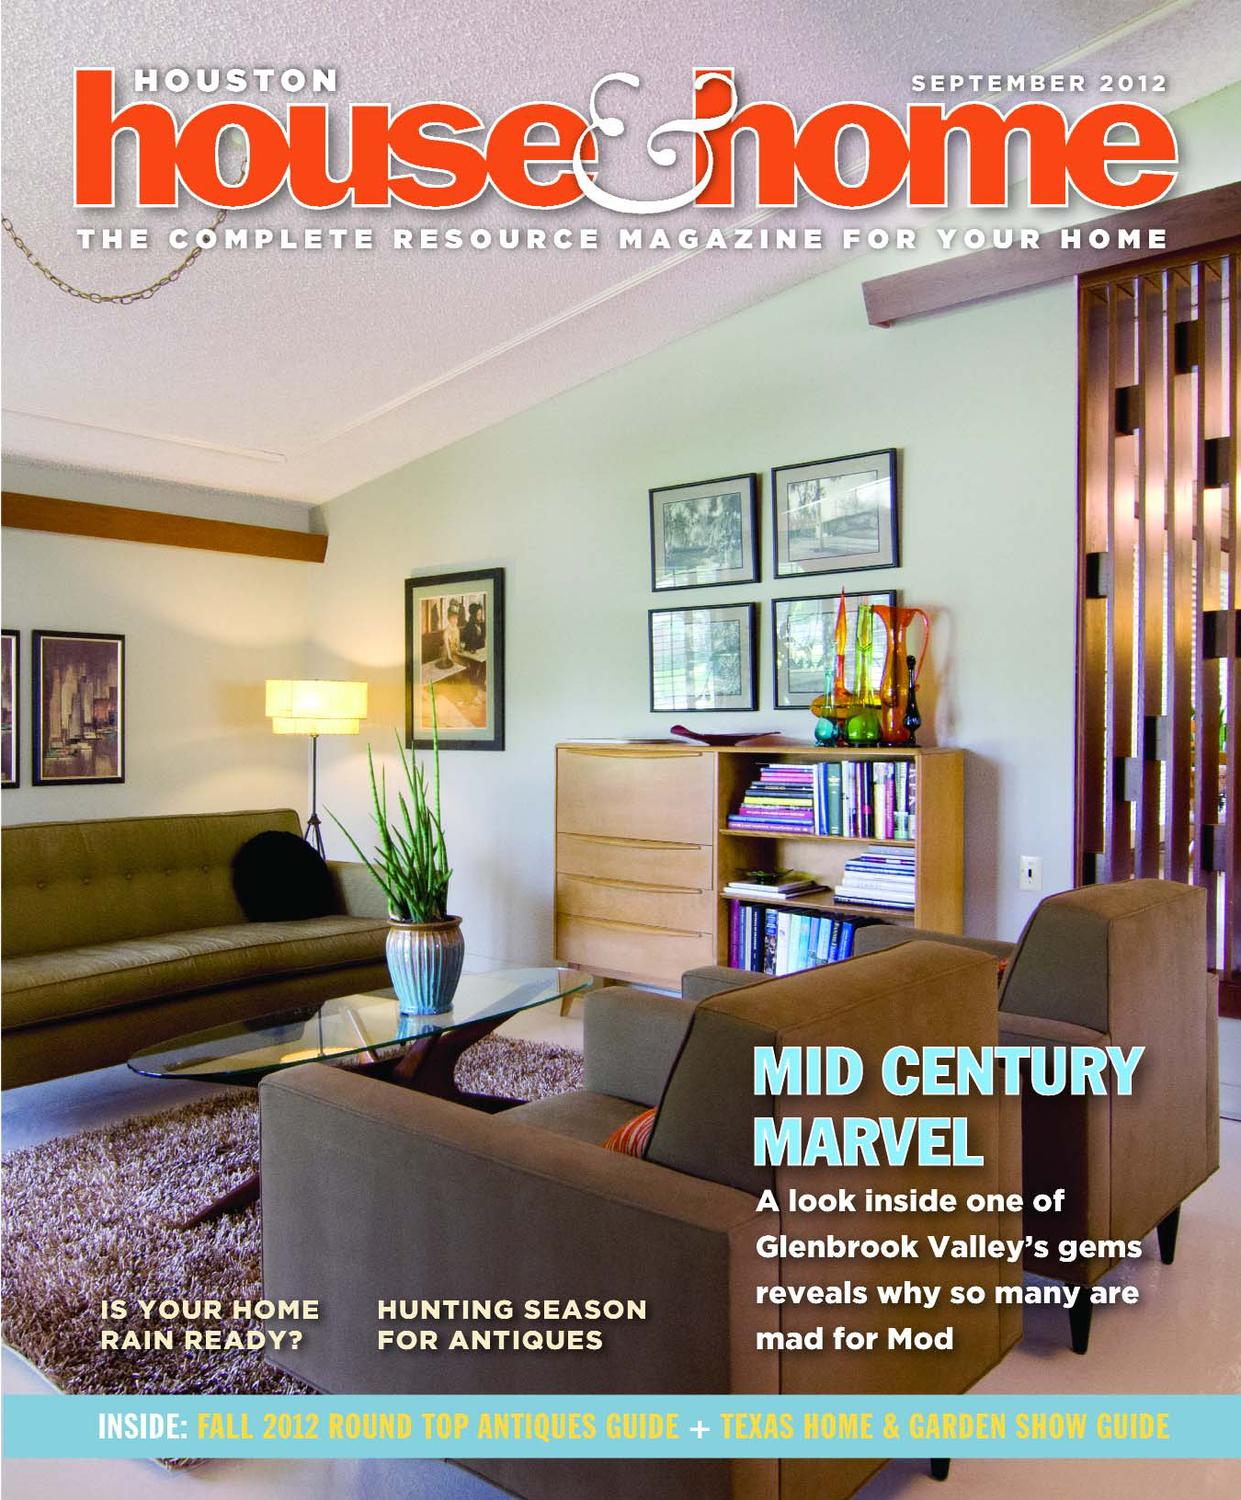 Your home for vacation amp prosperity - Houston House Home Magazine September 2012 Issue By Houston House Home Magazine Issuu